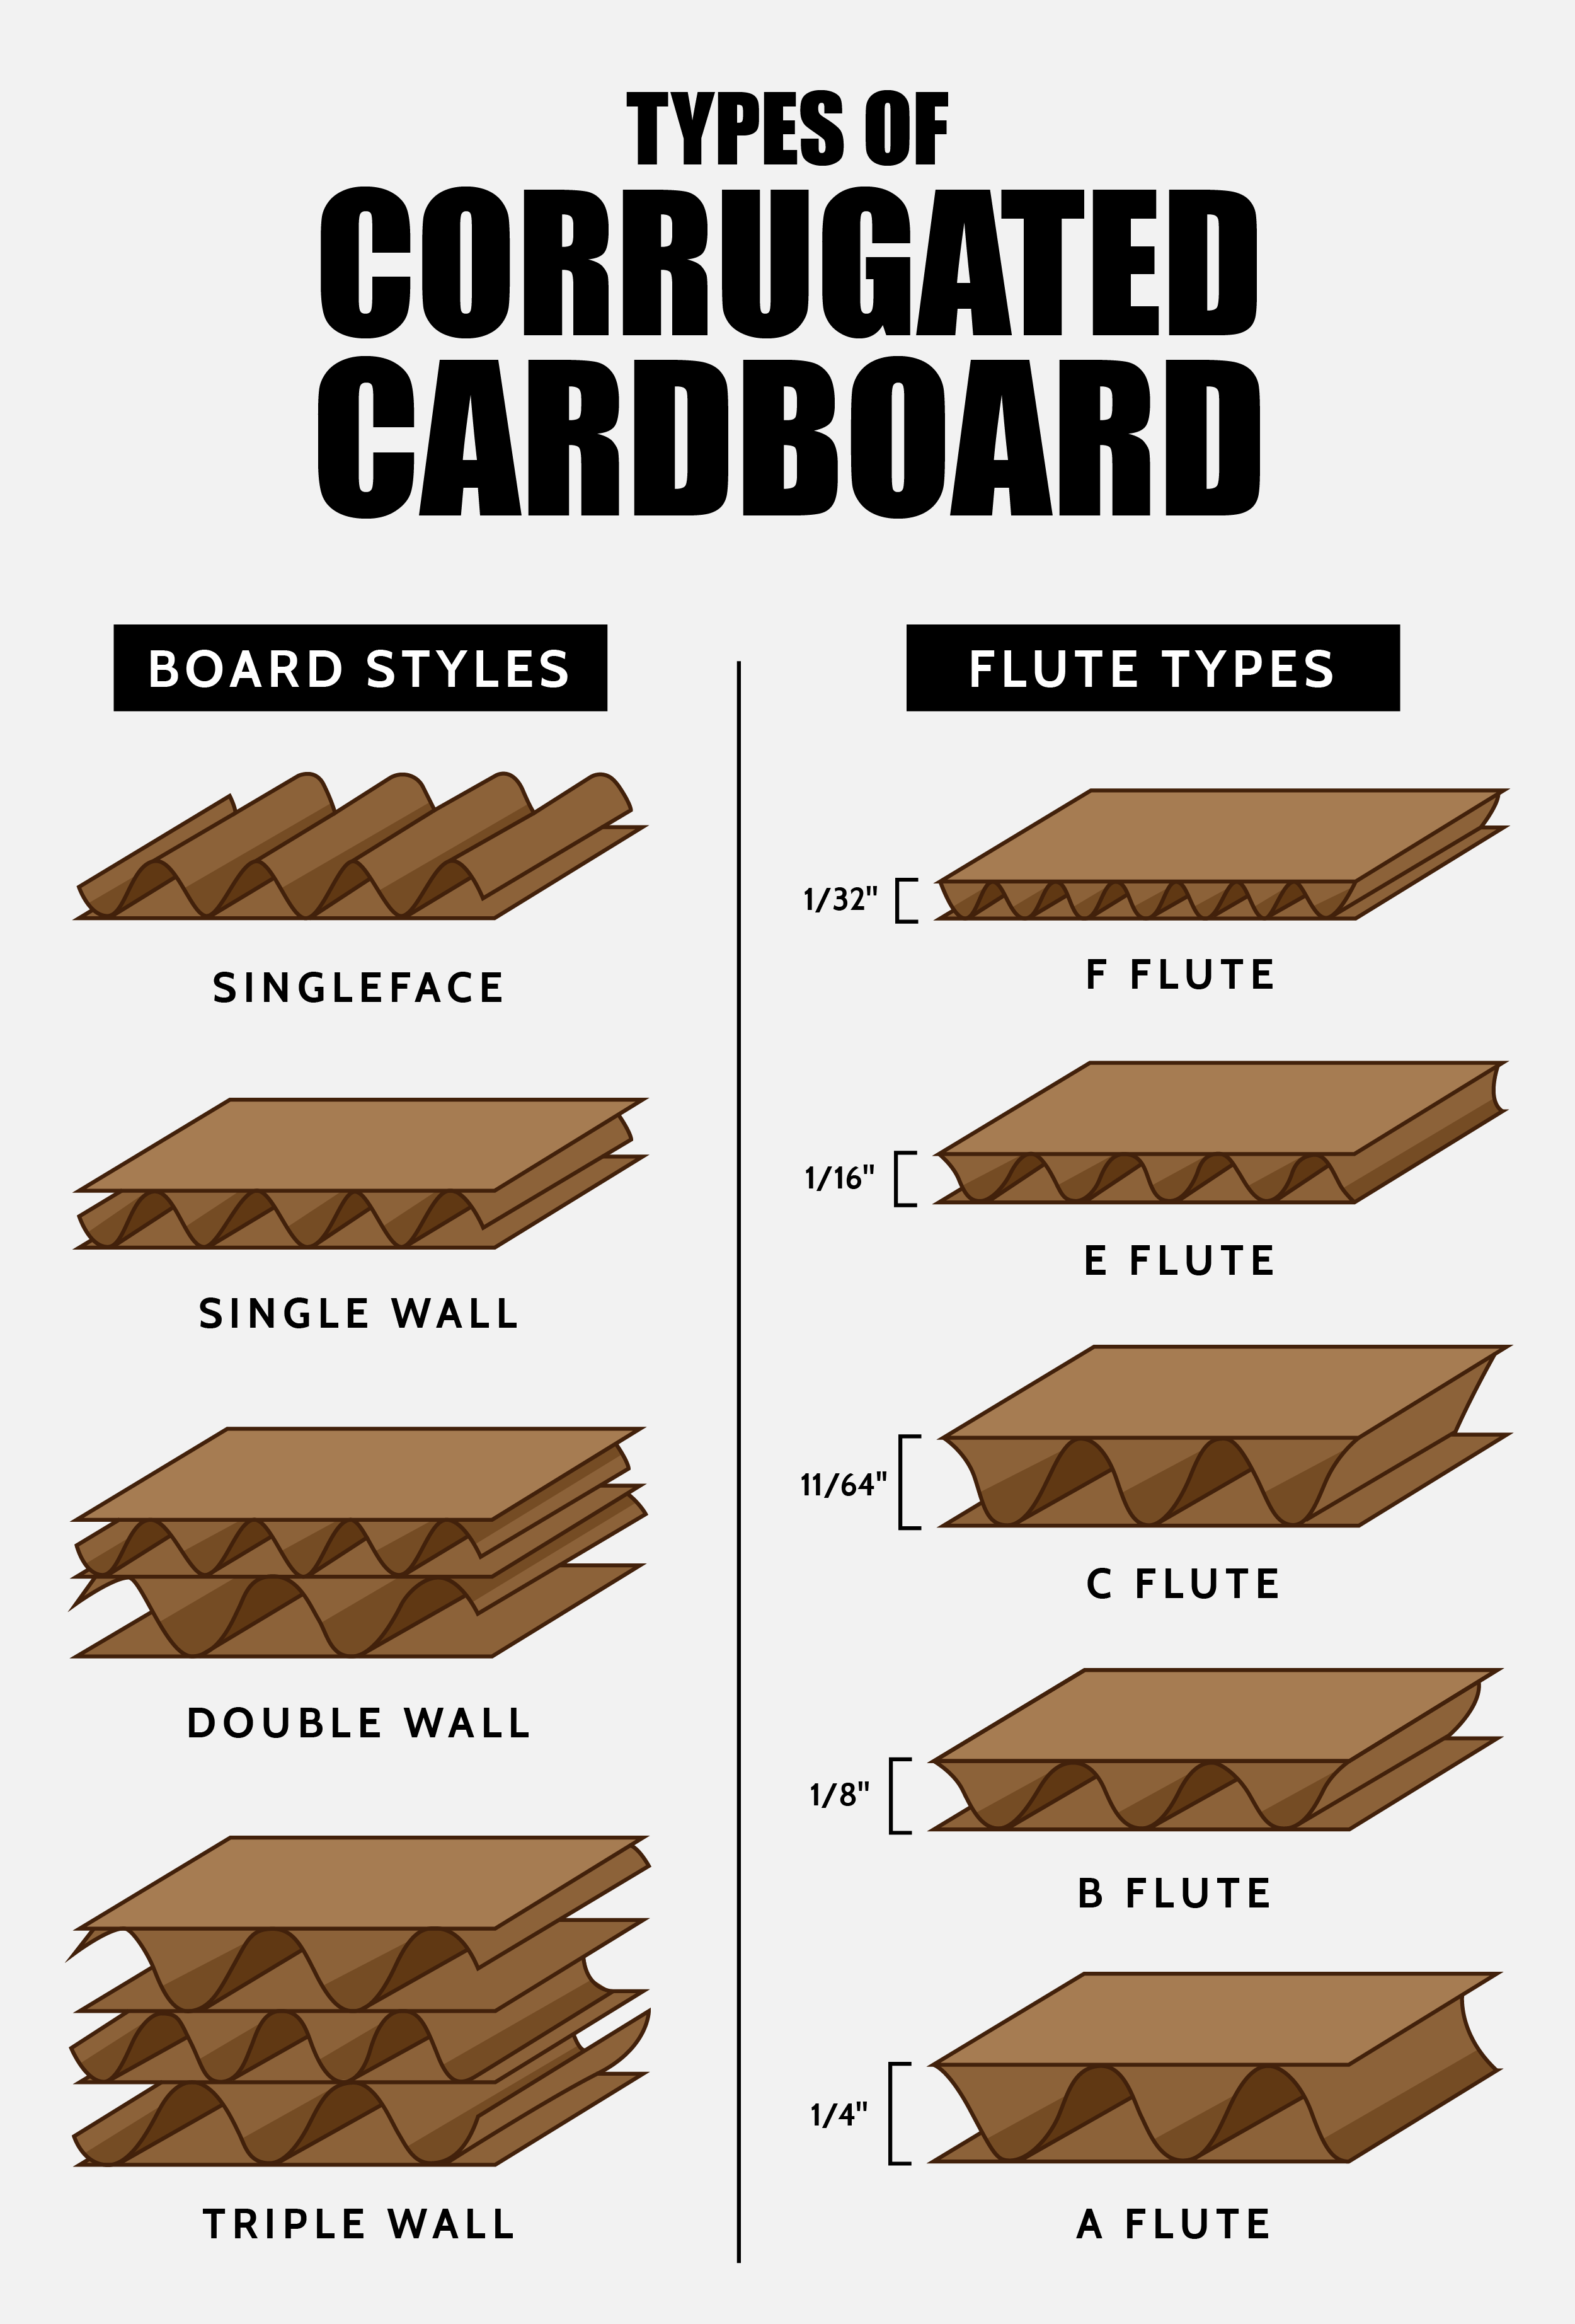 Types of Corrugated Cardboard Infographic